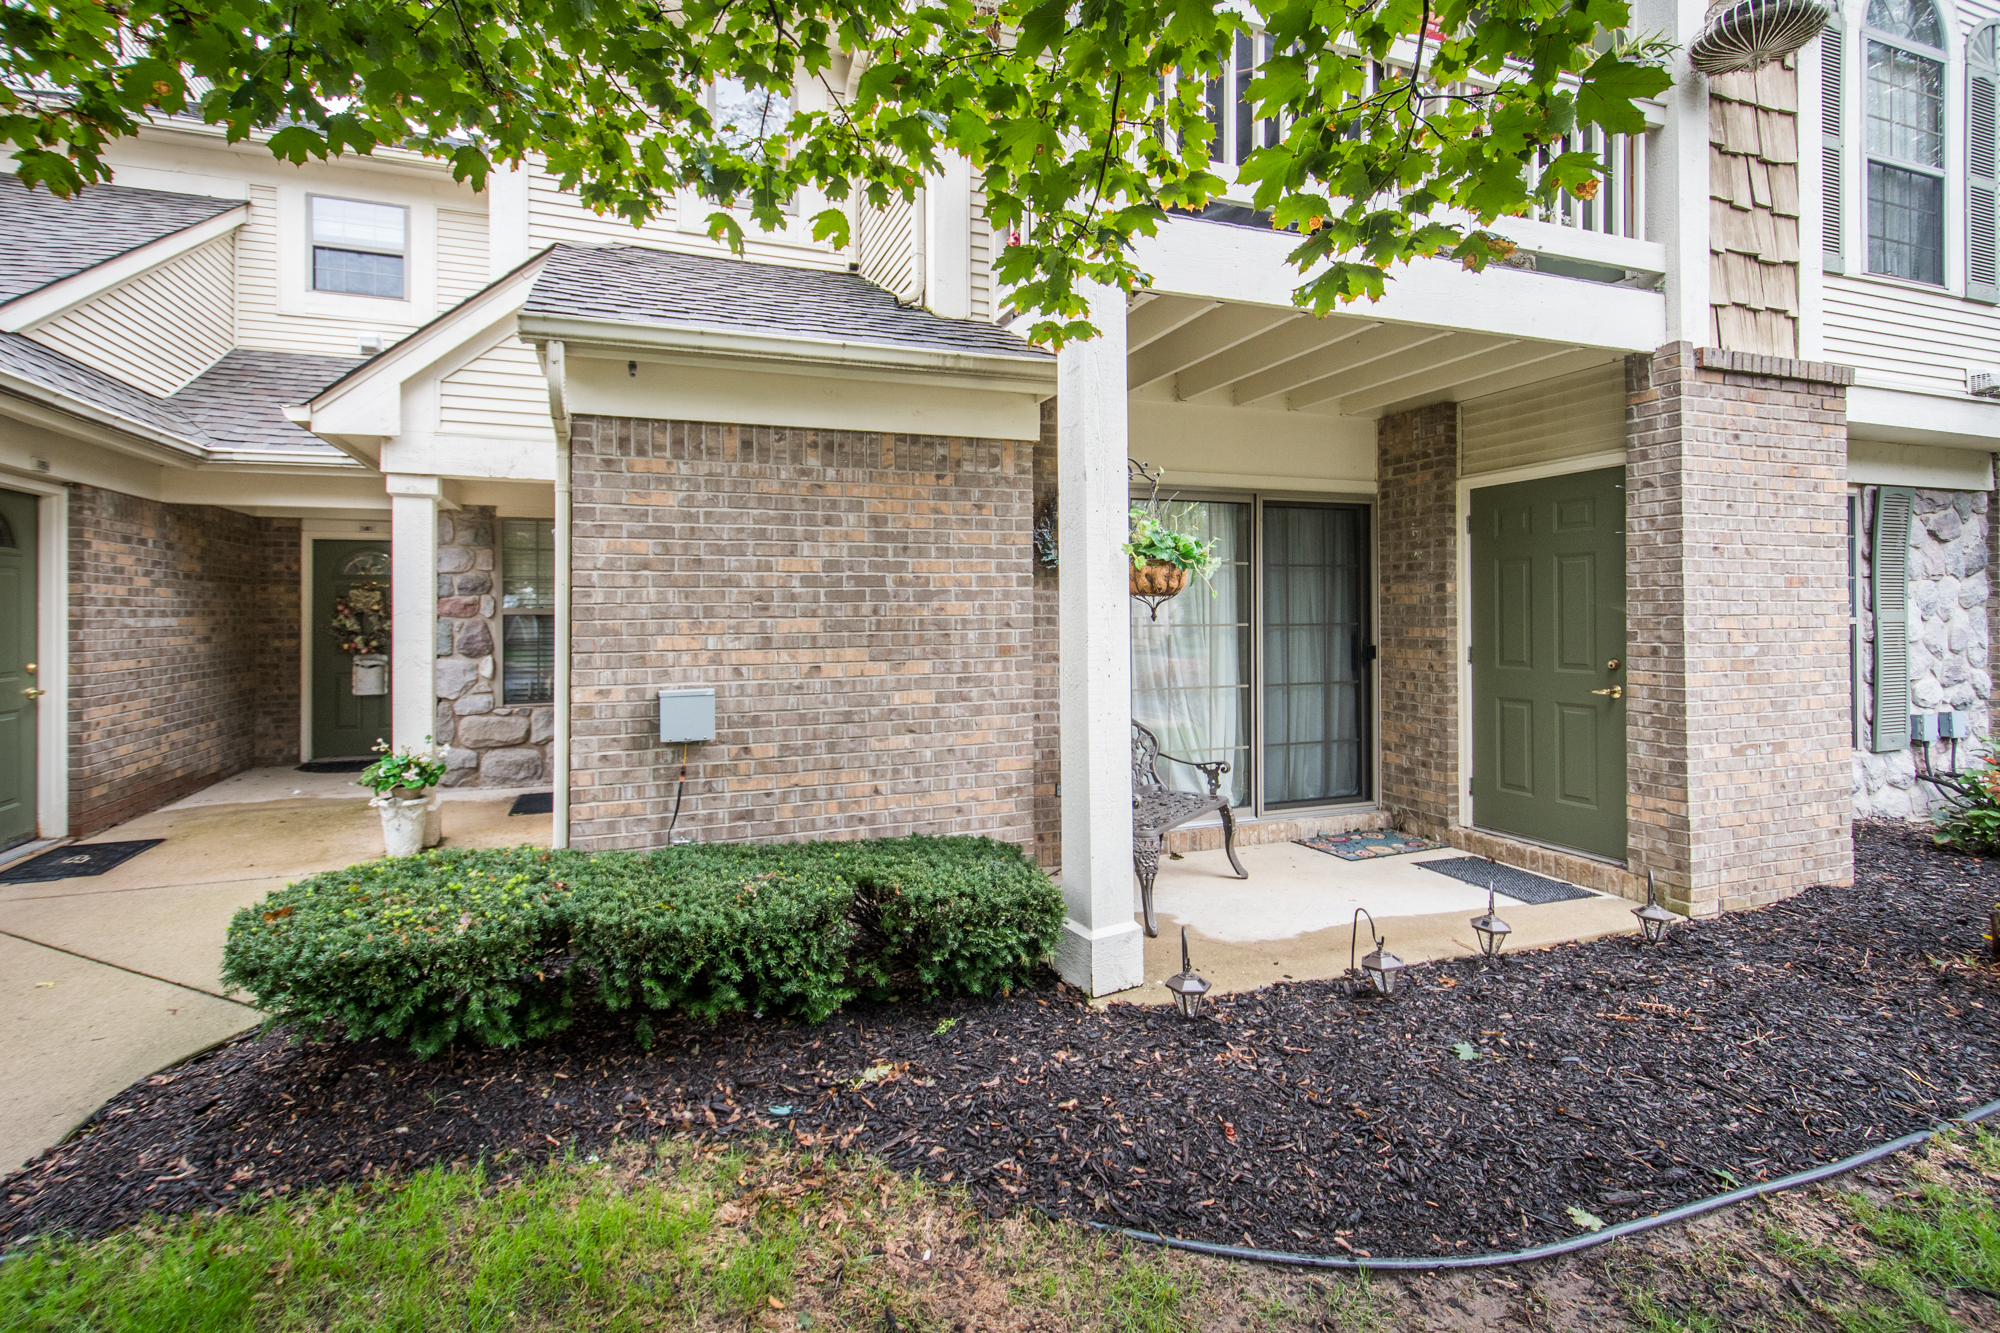 Maplewood Court- South Lyon - $89,900   DOM 22 / Sold for 100% of asking price / 14 Showings